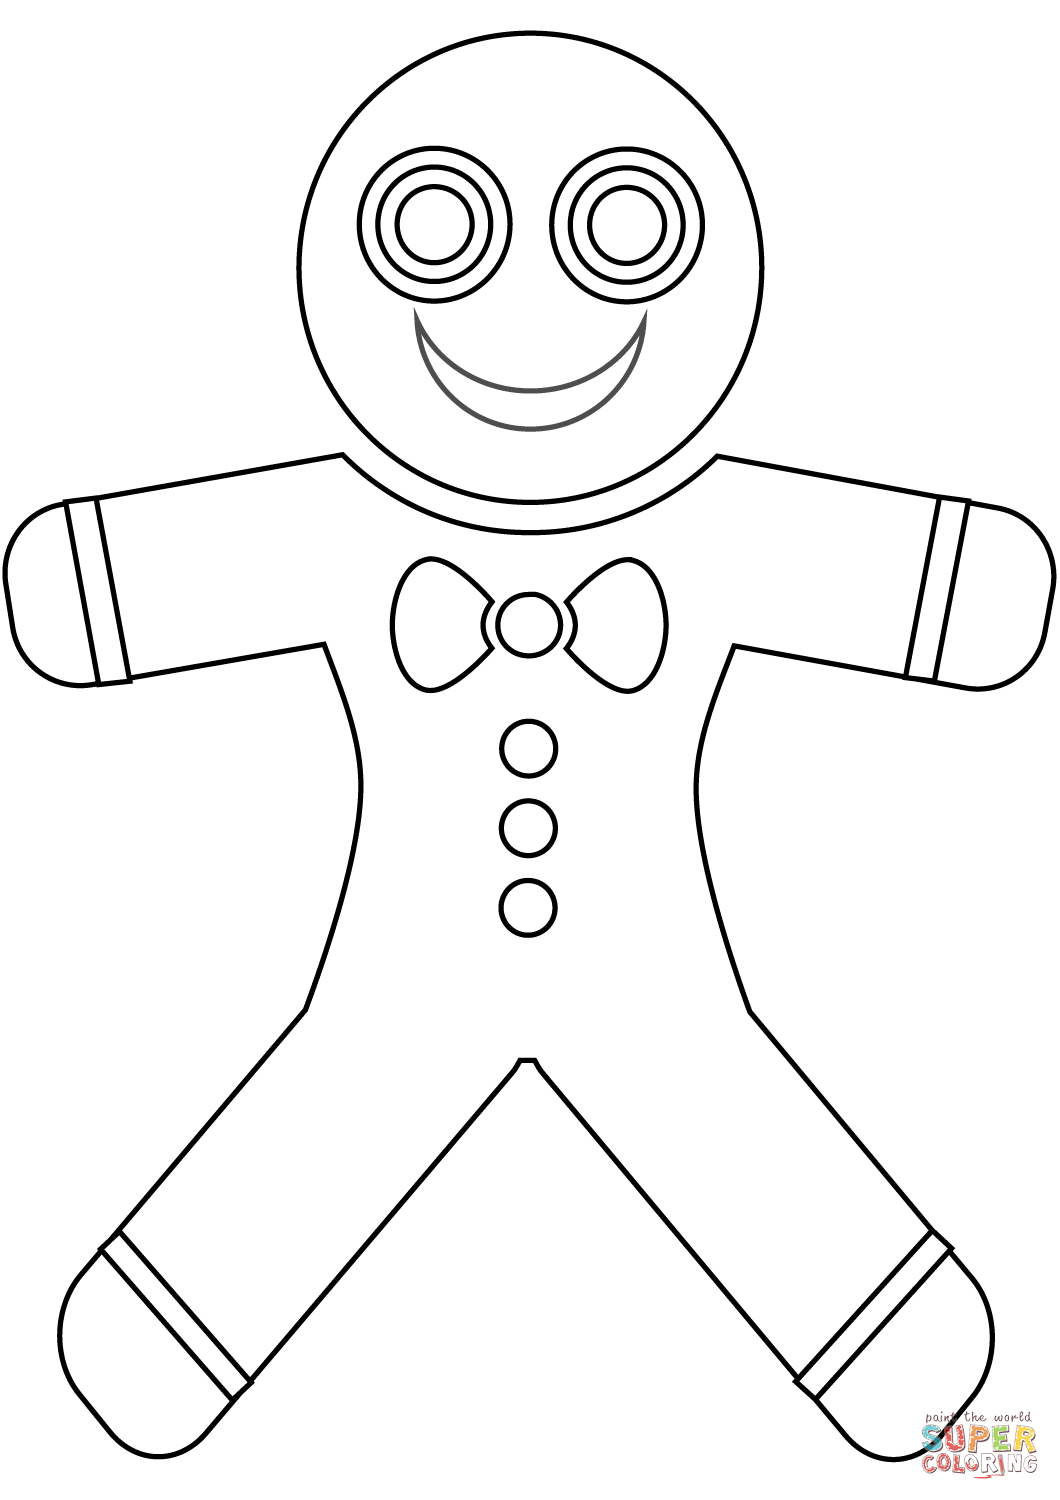 blank gingerbread man coloring page 15 gingerbread man templates colouring pages free man blank coloring page gingerbread